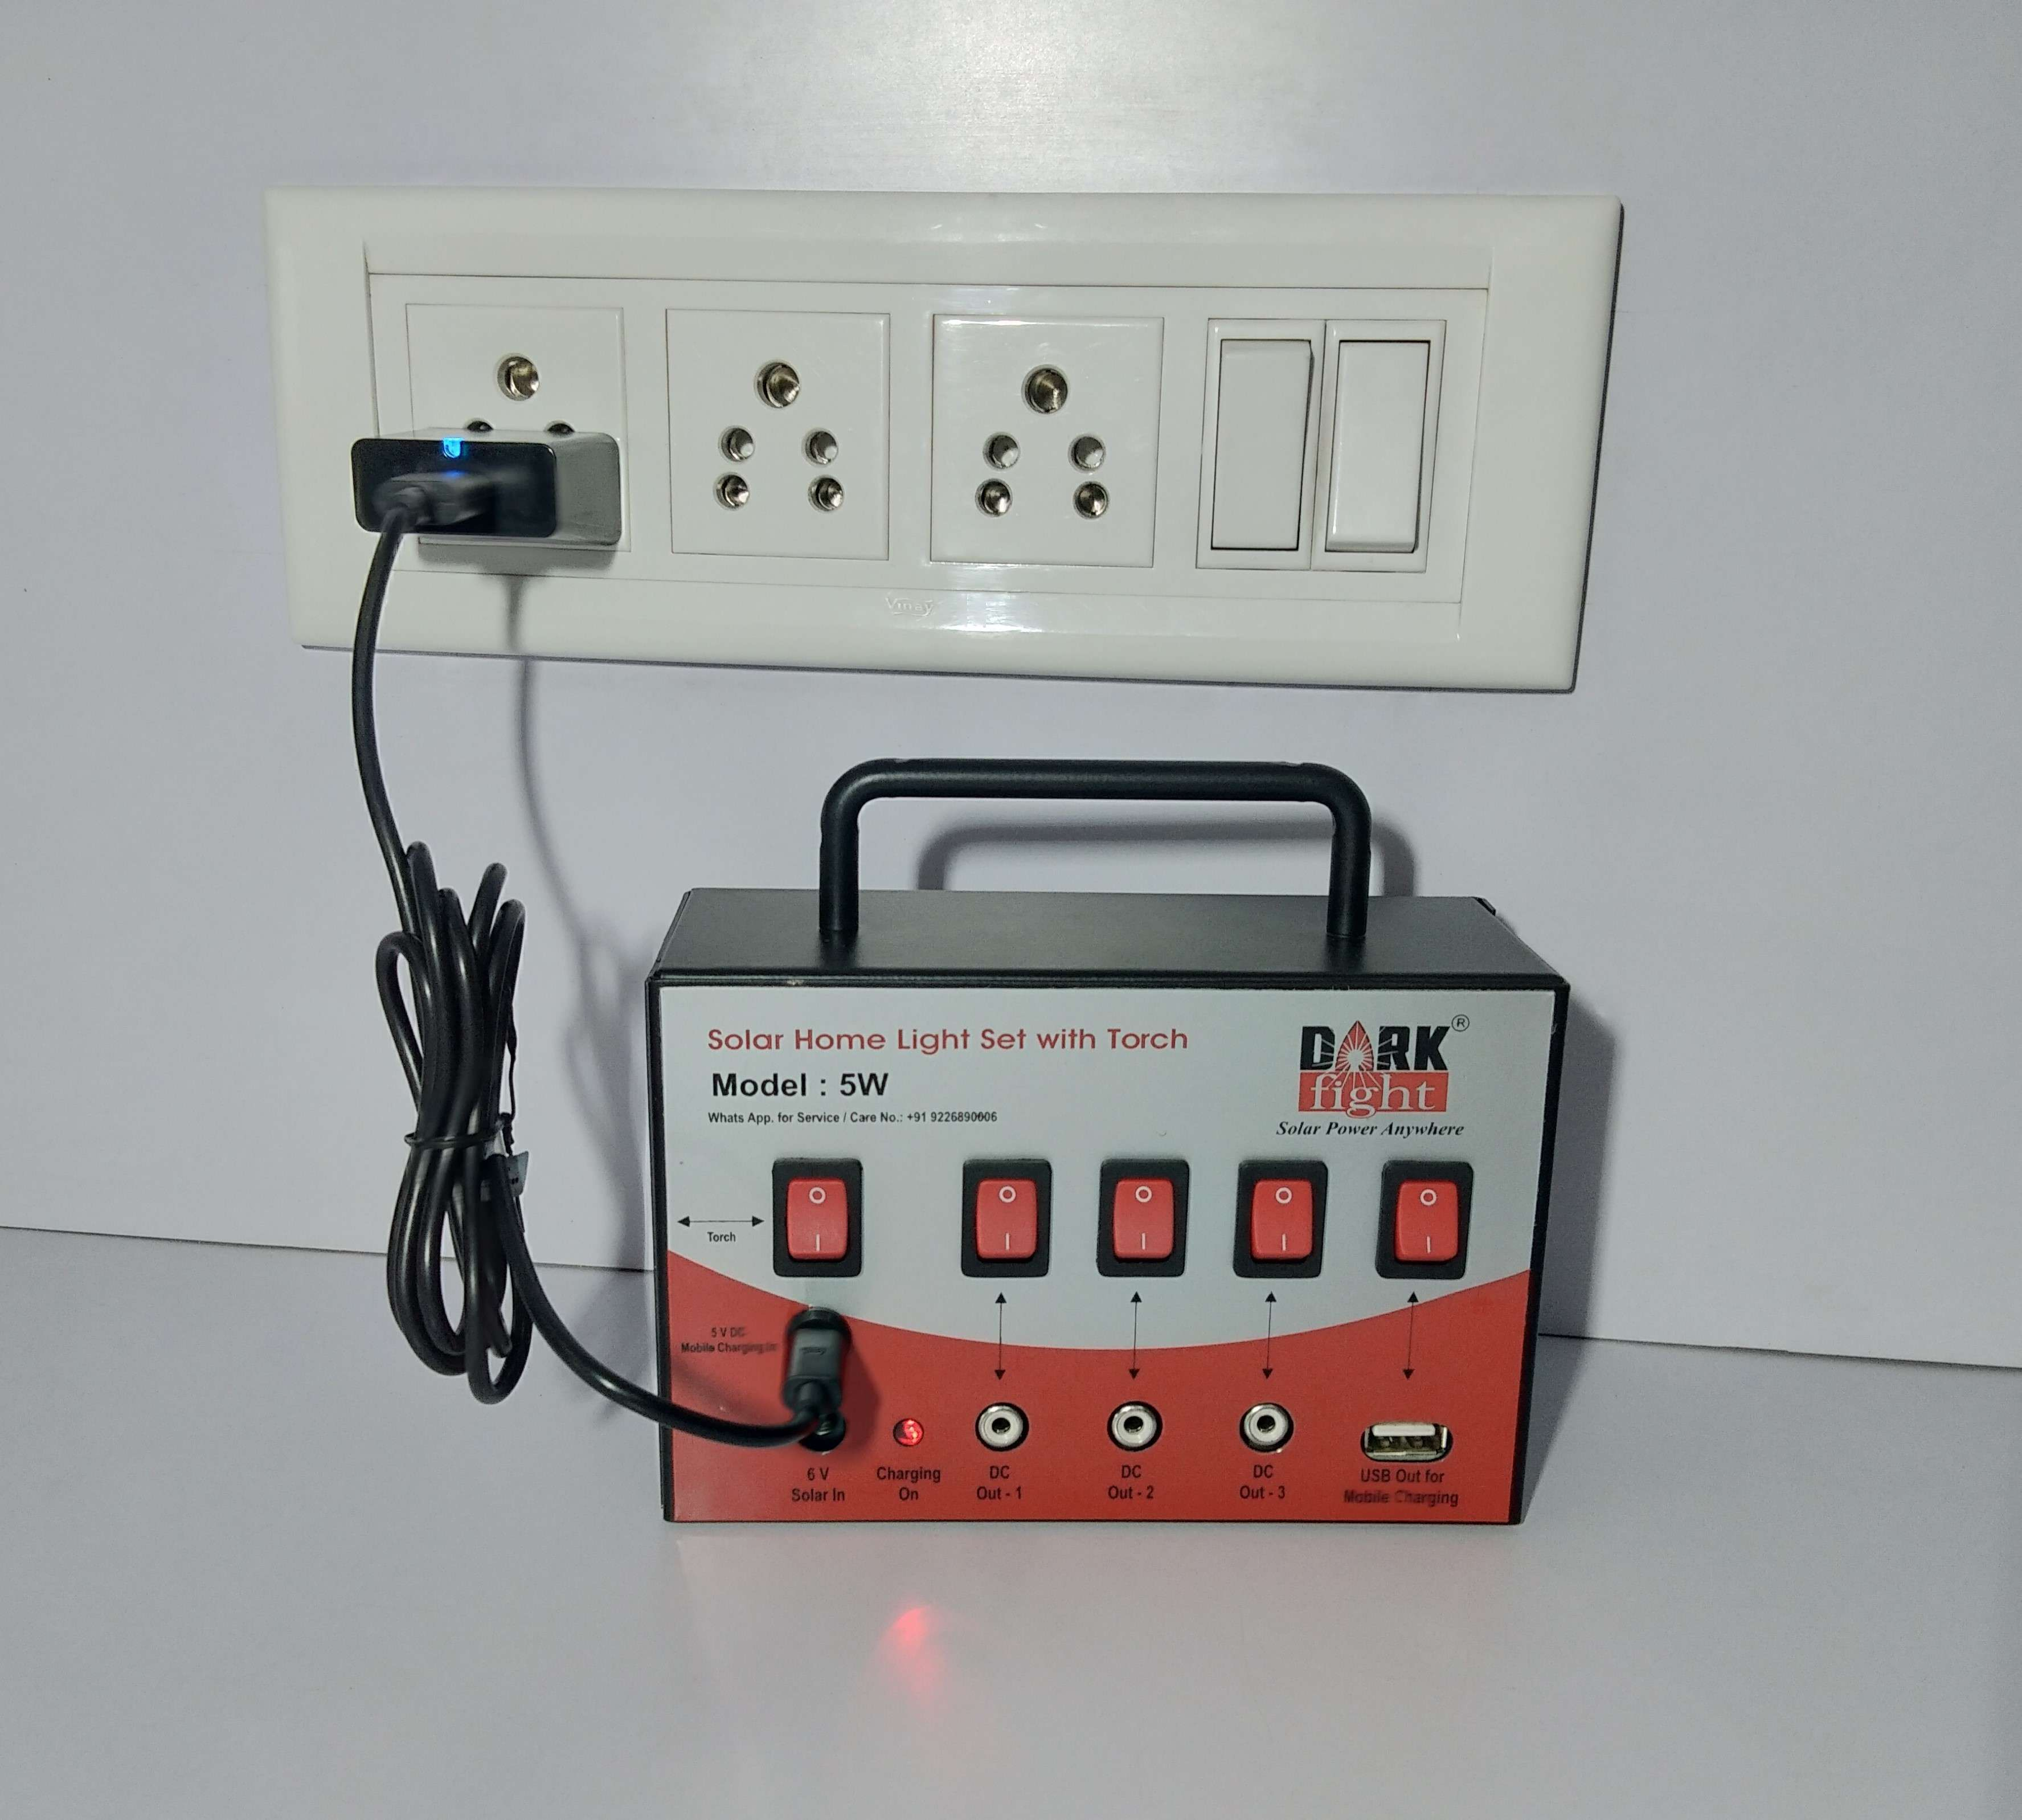 Charging Option With USB Mobile Charging (Electricity).